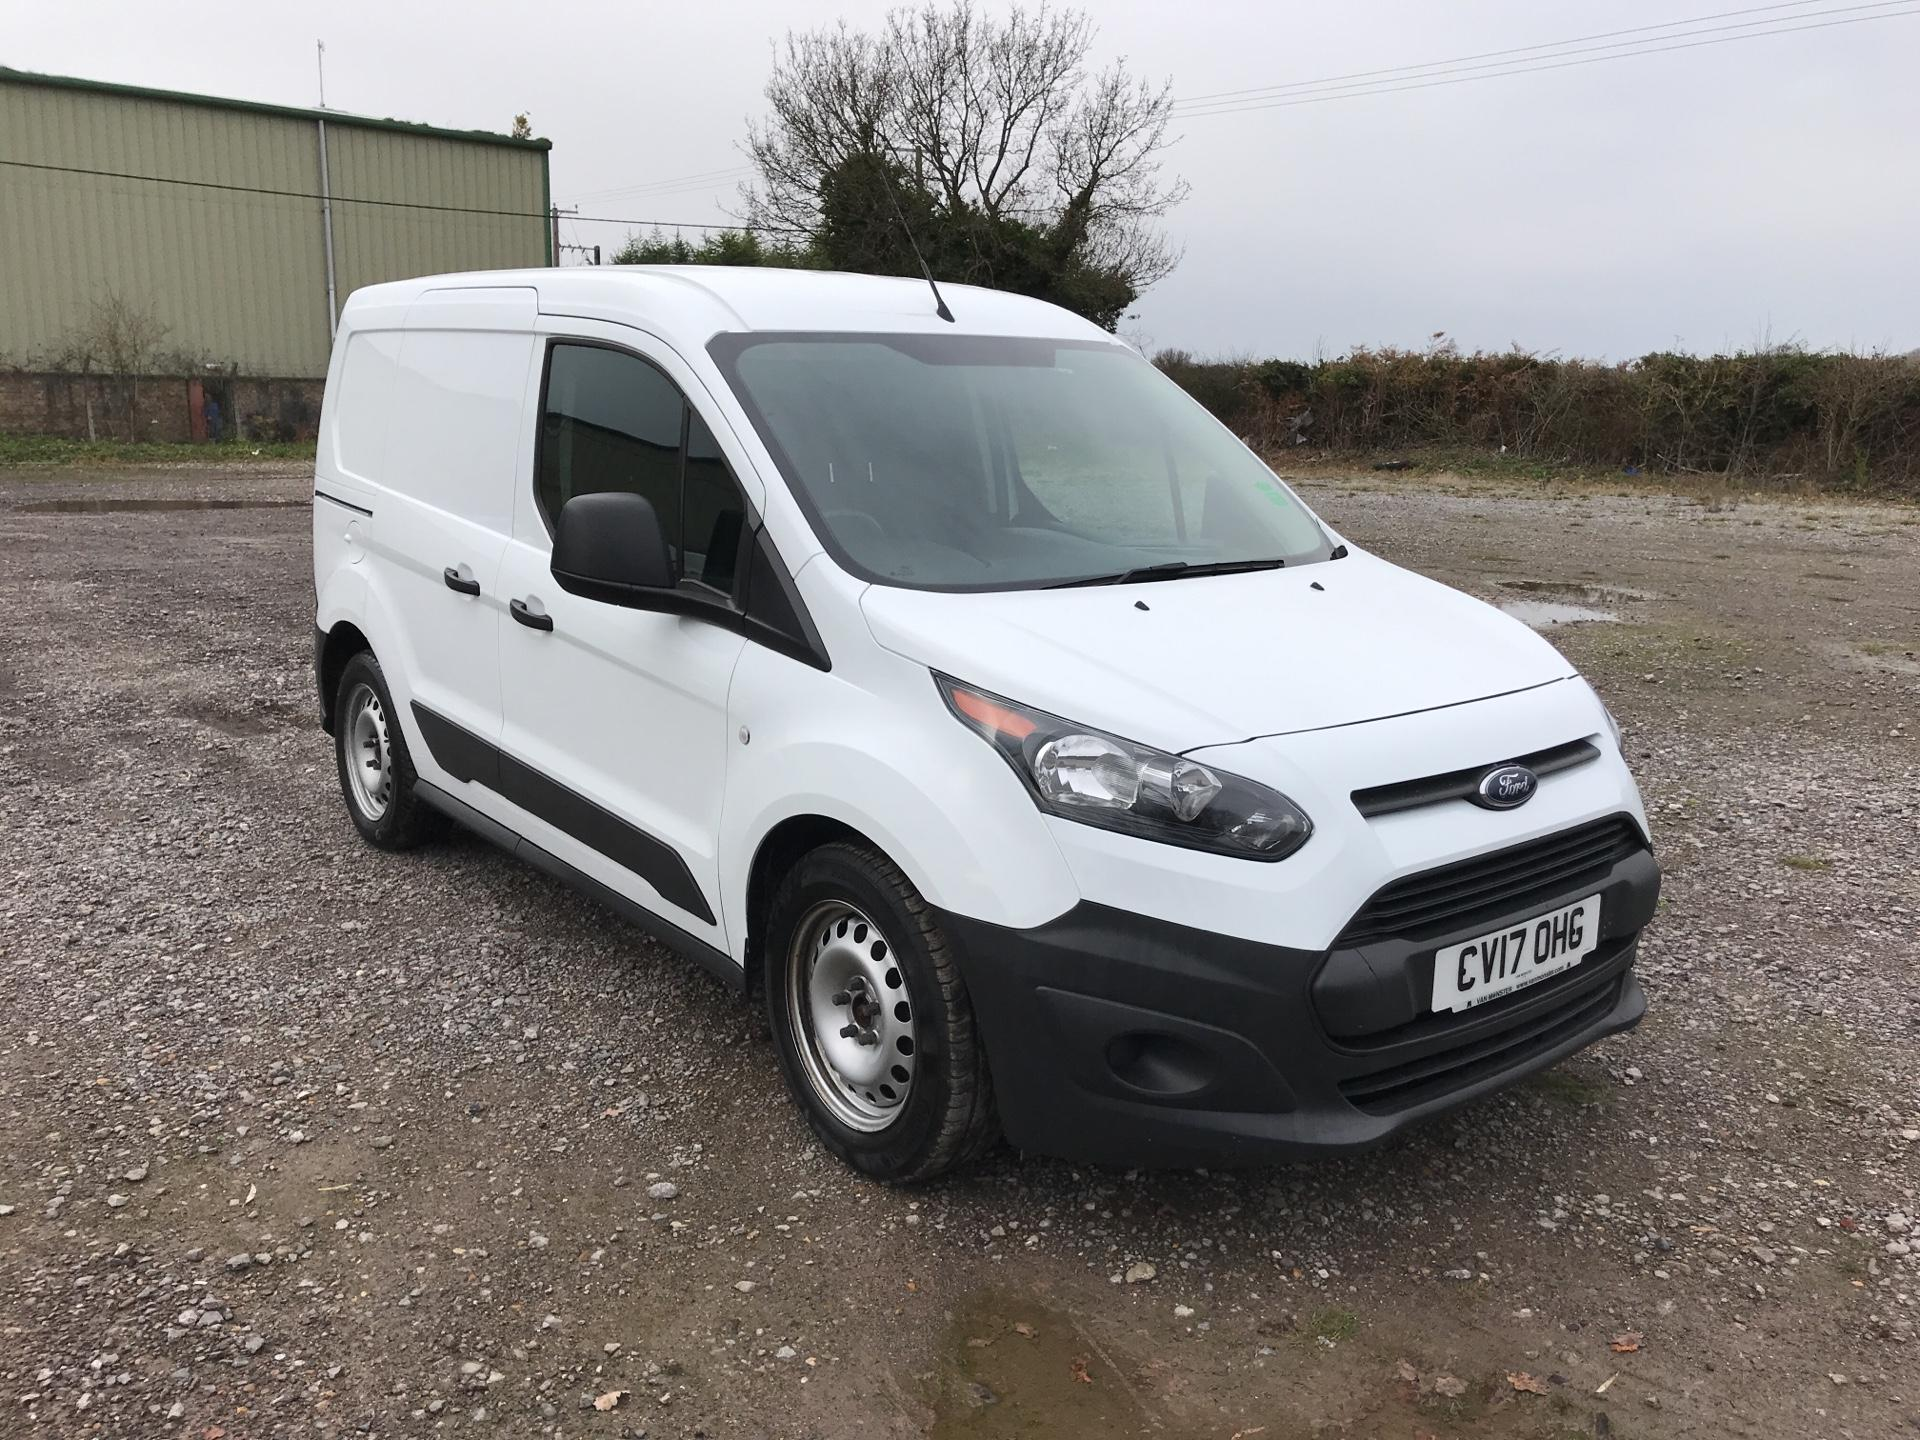 2017 Ford Transit Connect  220 L1 DIESEL 1.5 TDCi 100PS DOUBLE CAB VAN EURO 6 (CV17OHG)